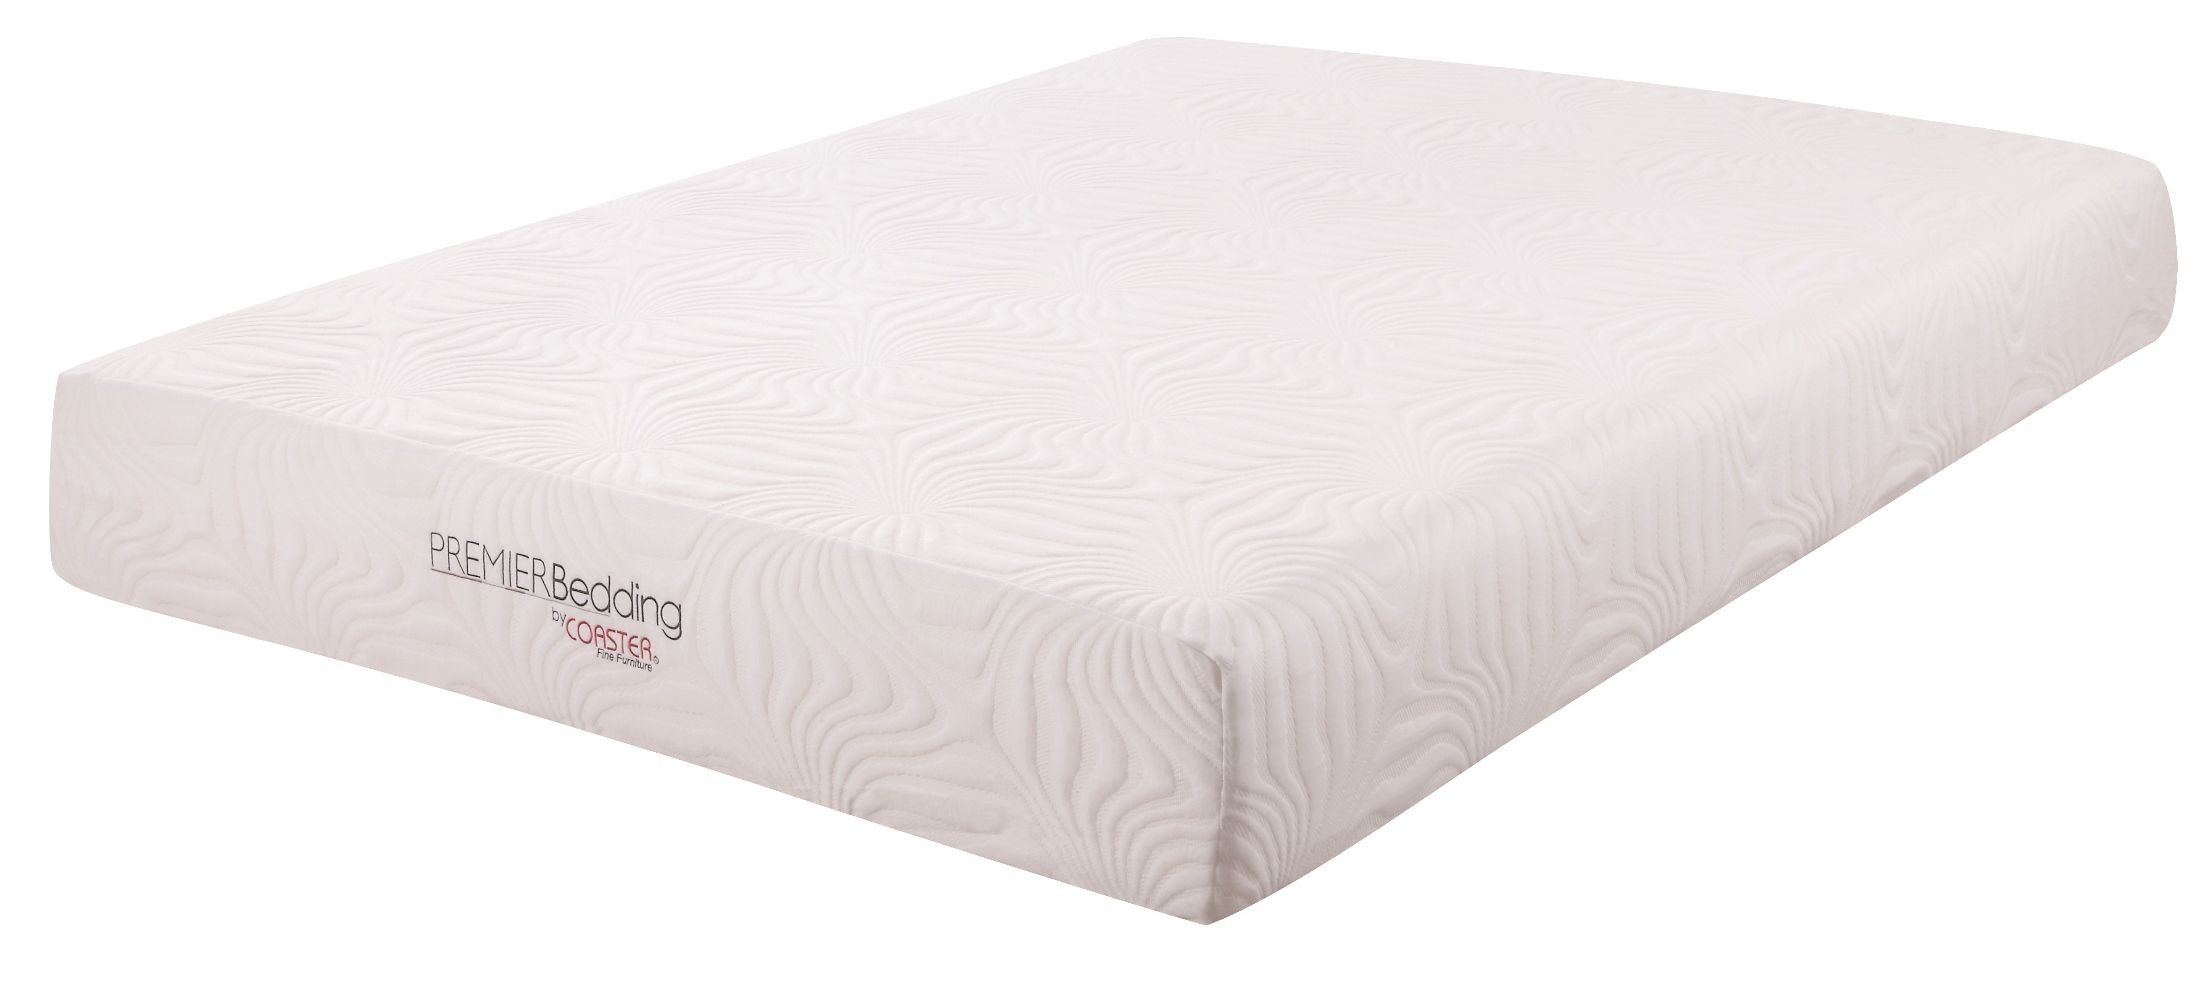 10 Twin Xl Pocket Coil Mattress 350066tl Coaster Furniture